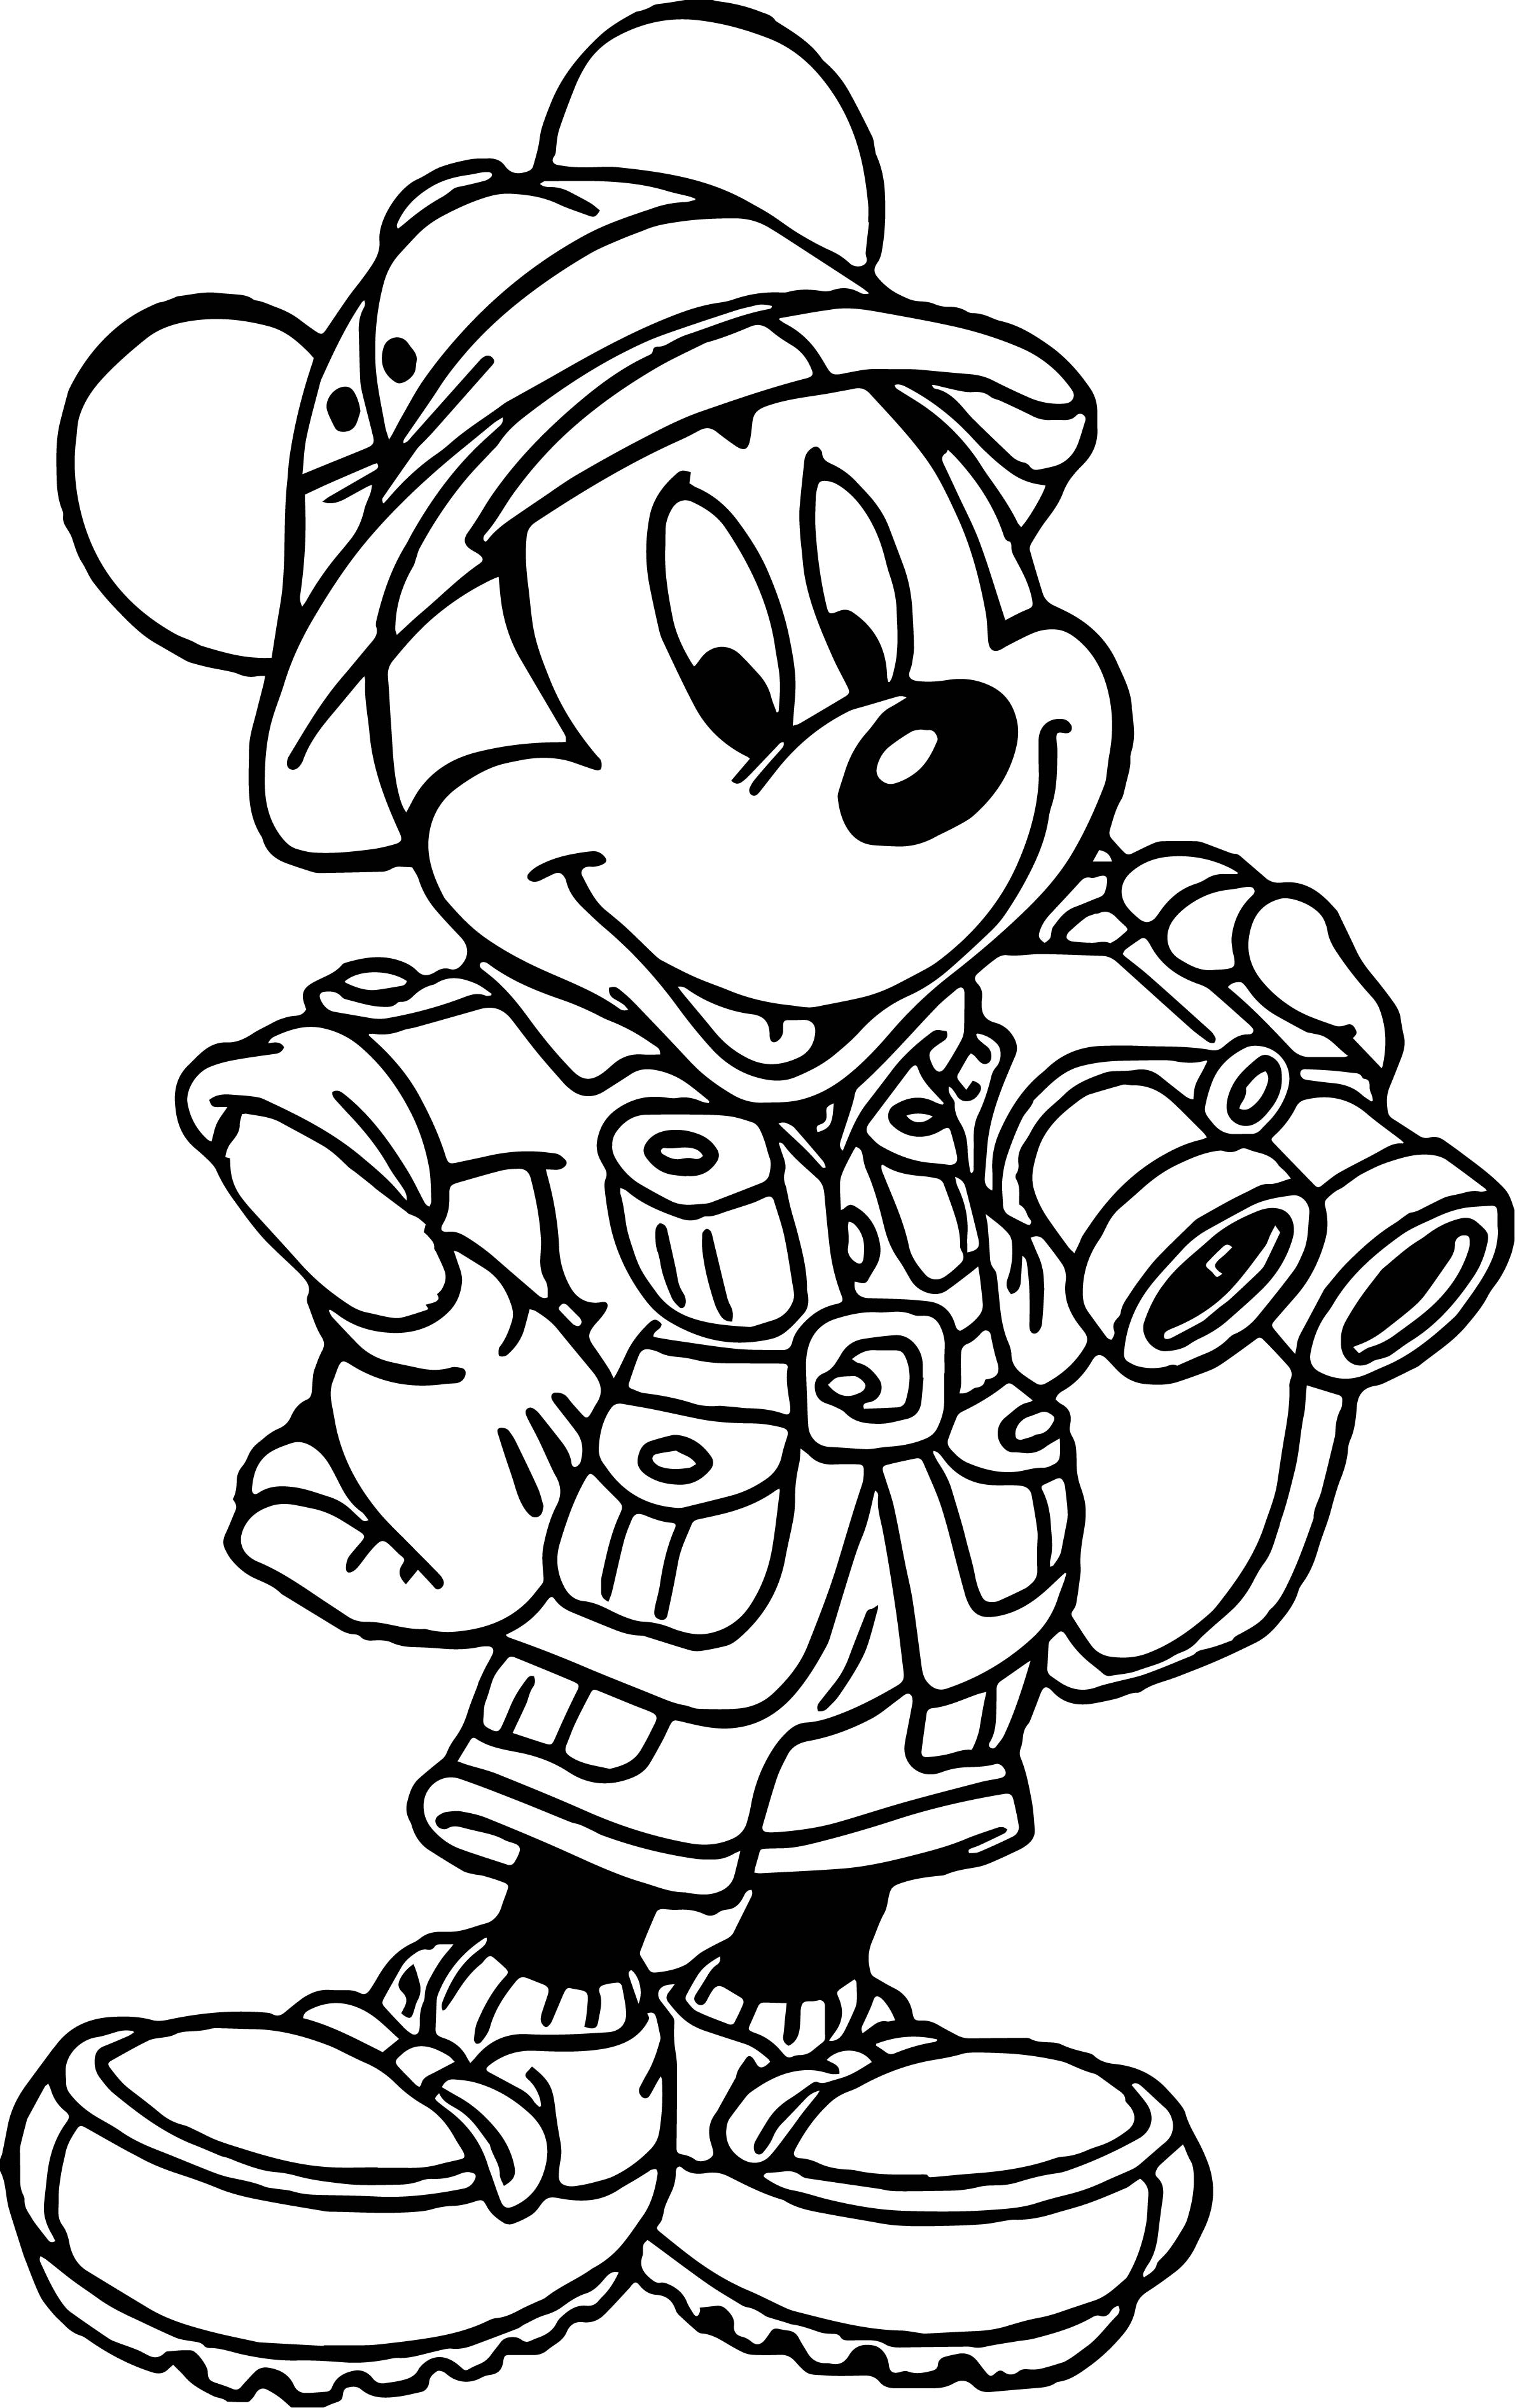 2381x3785 Mickey Mouse Cartoon Animal Kingdom Travel Coloring Page